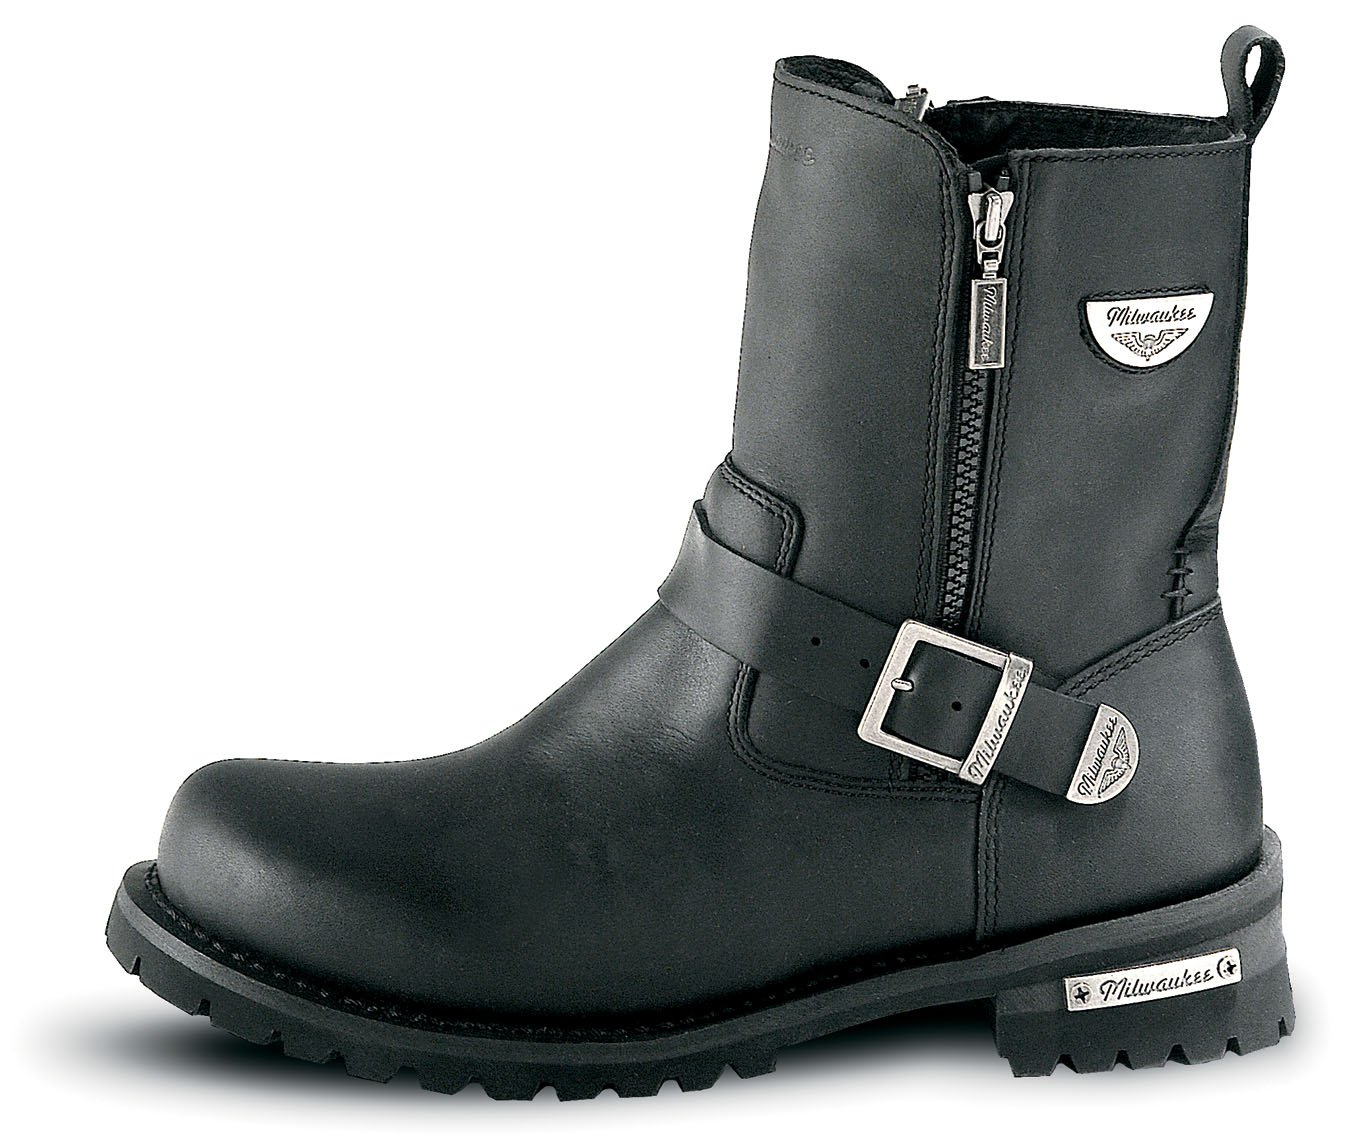 The right motorcycle boot is paramount to staying safe & in control so invest in proper footwear today. No hassle returns & day best price guarantee!